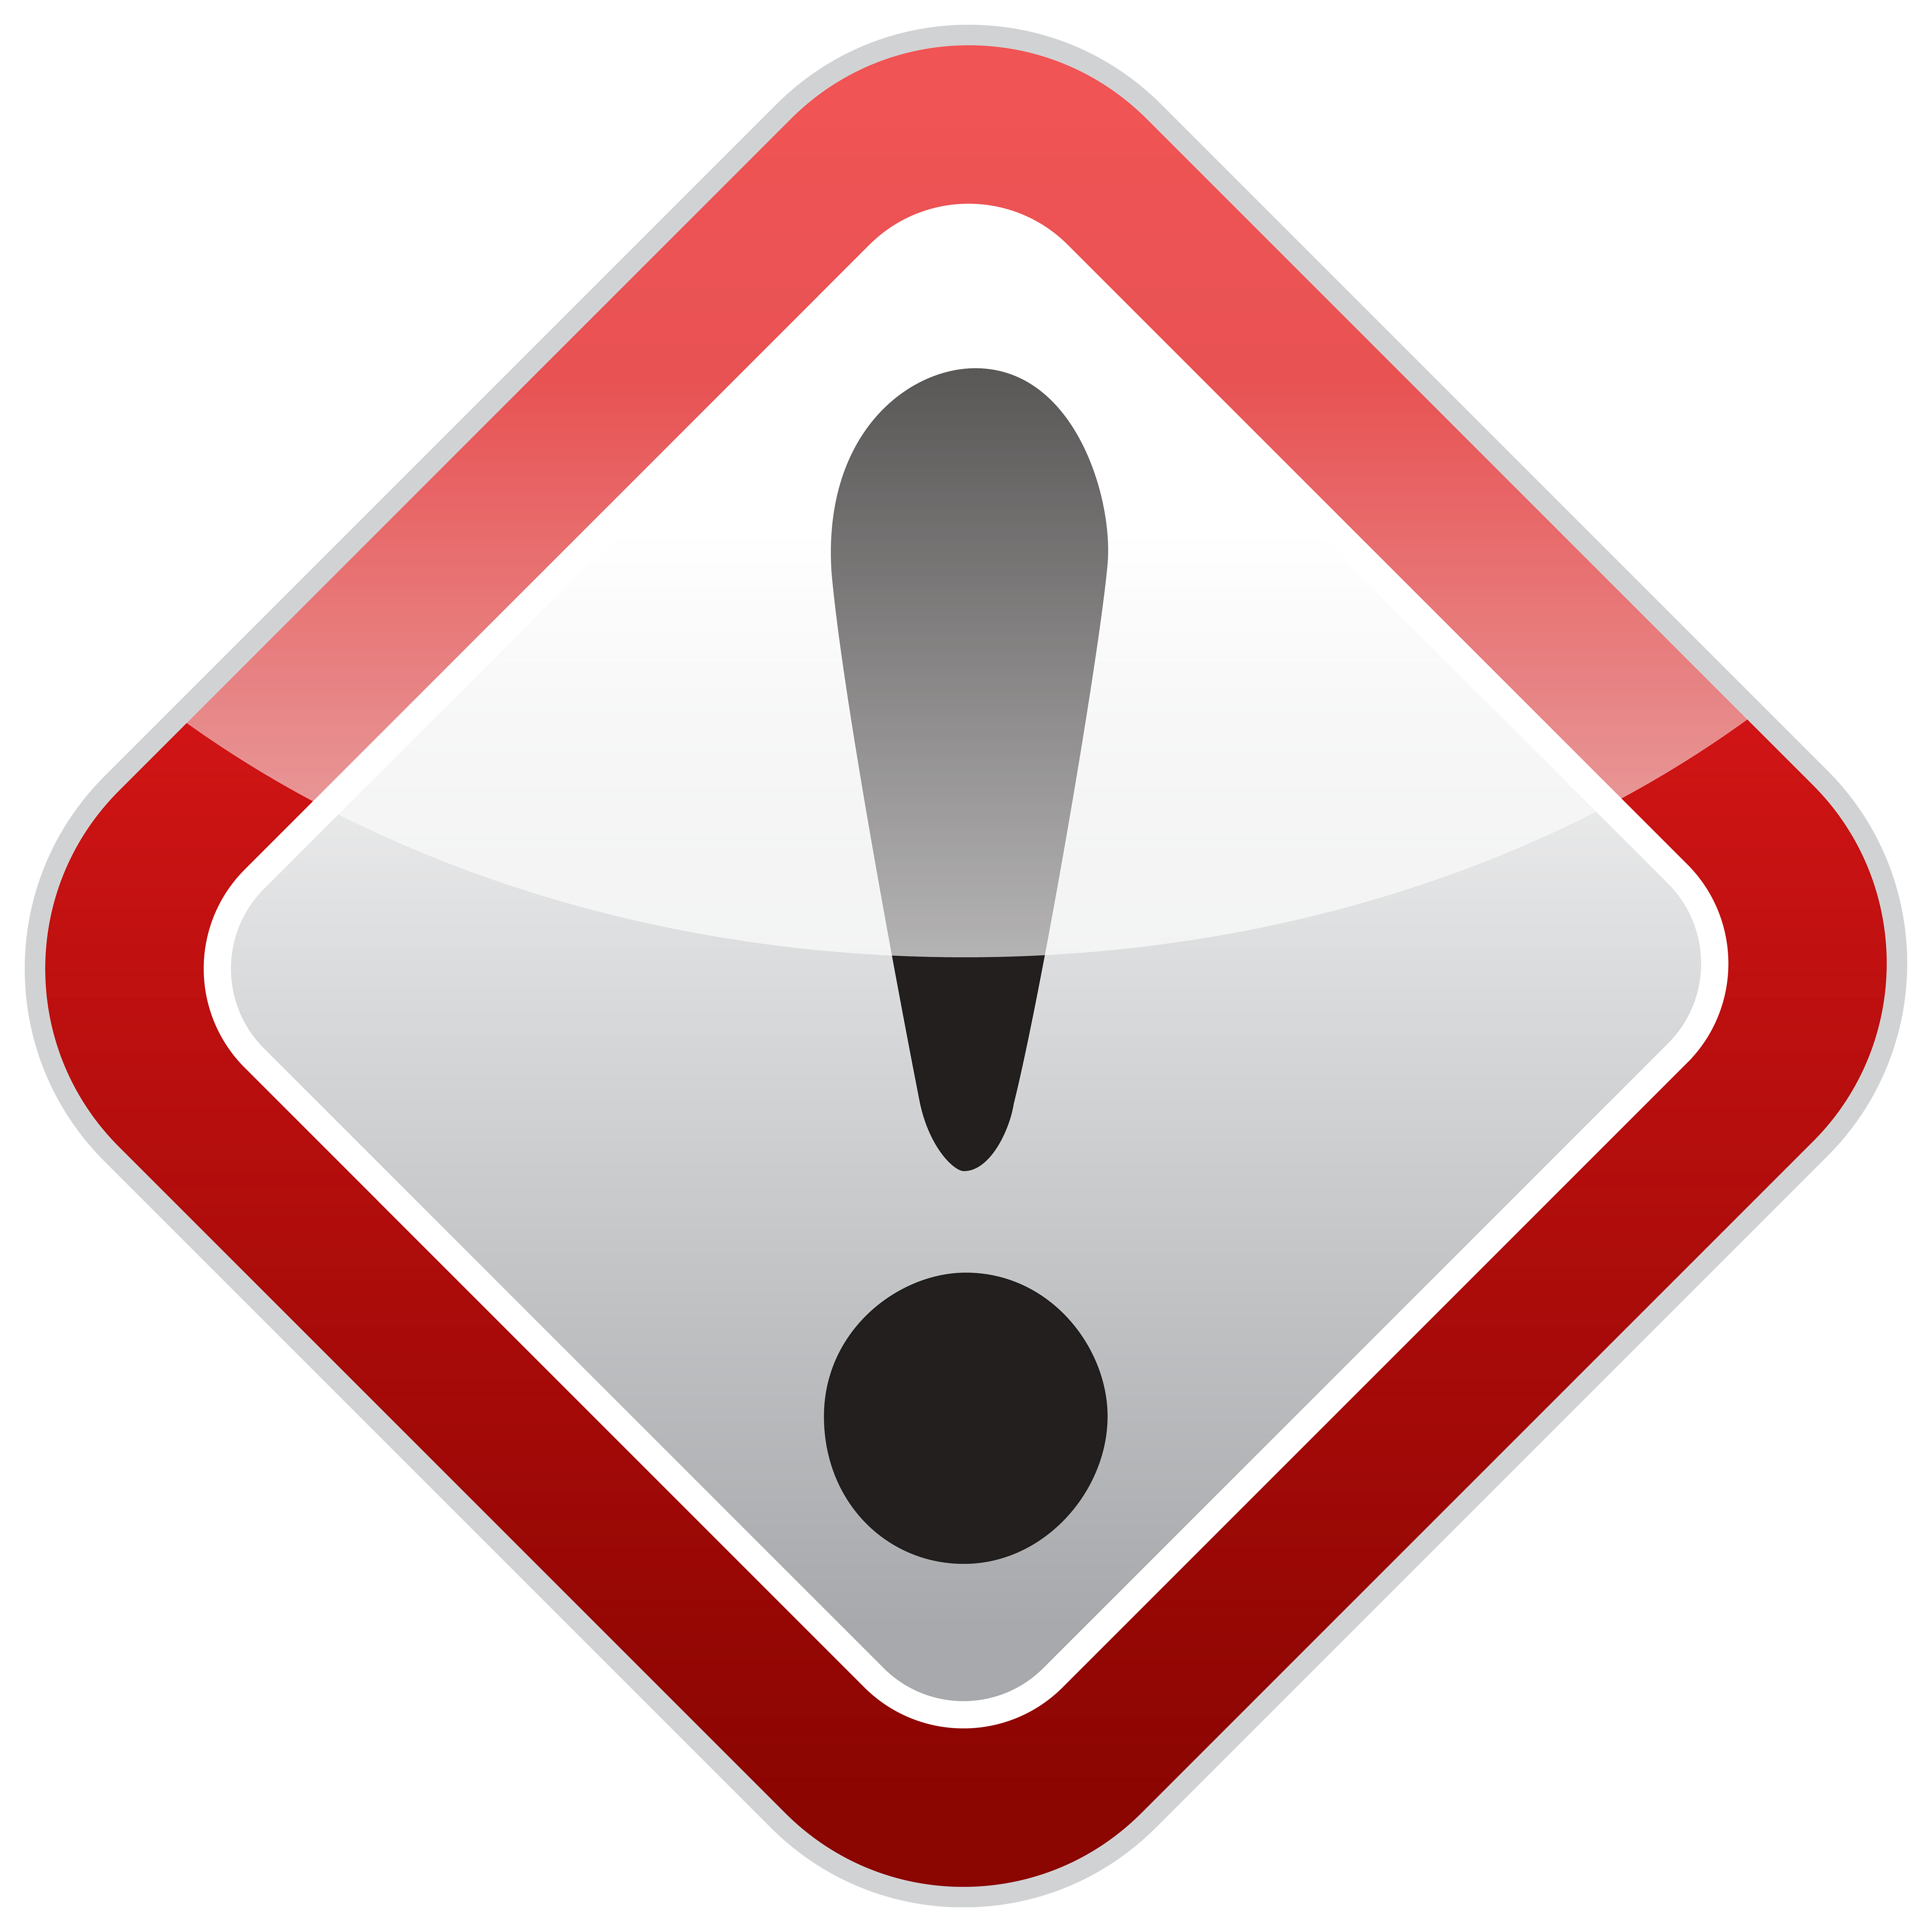 Triangular clipart safety. Warning sign png best